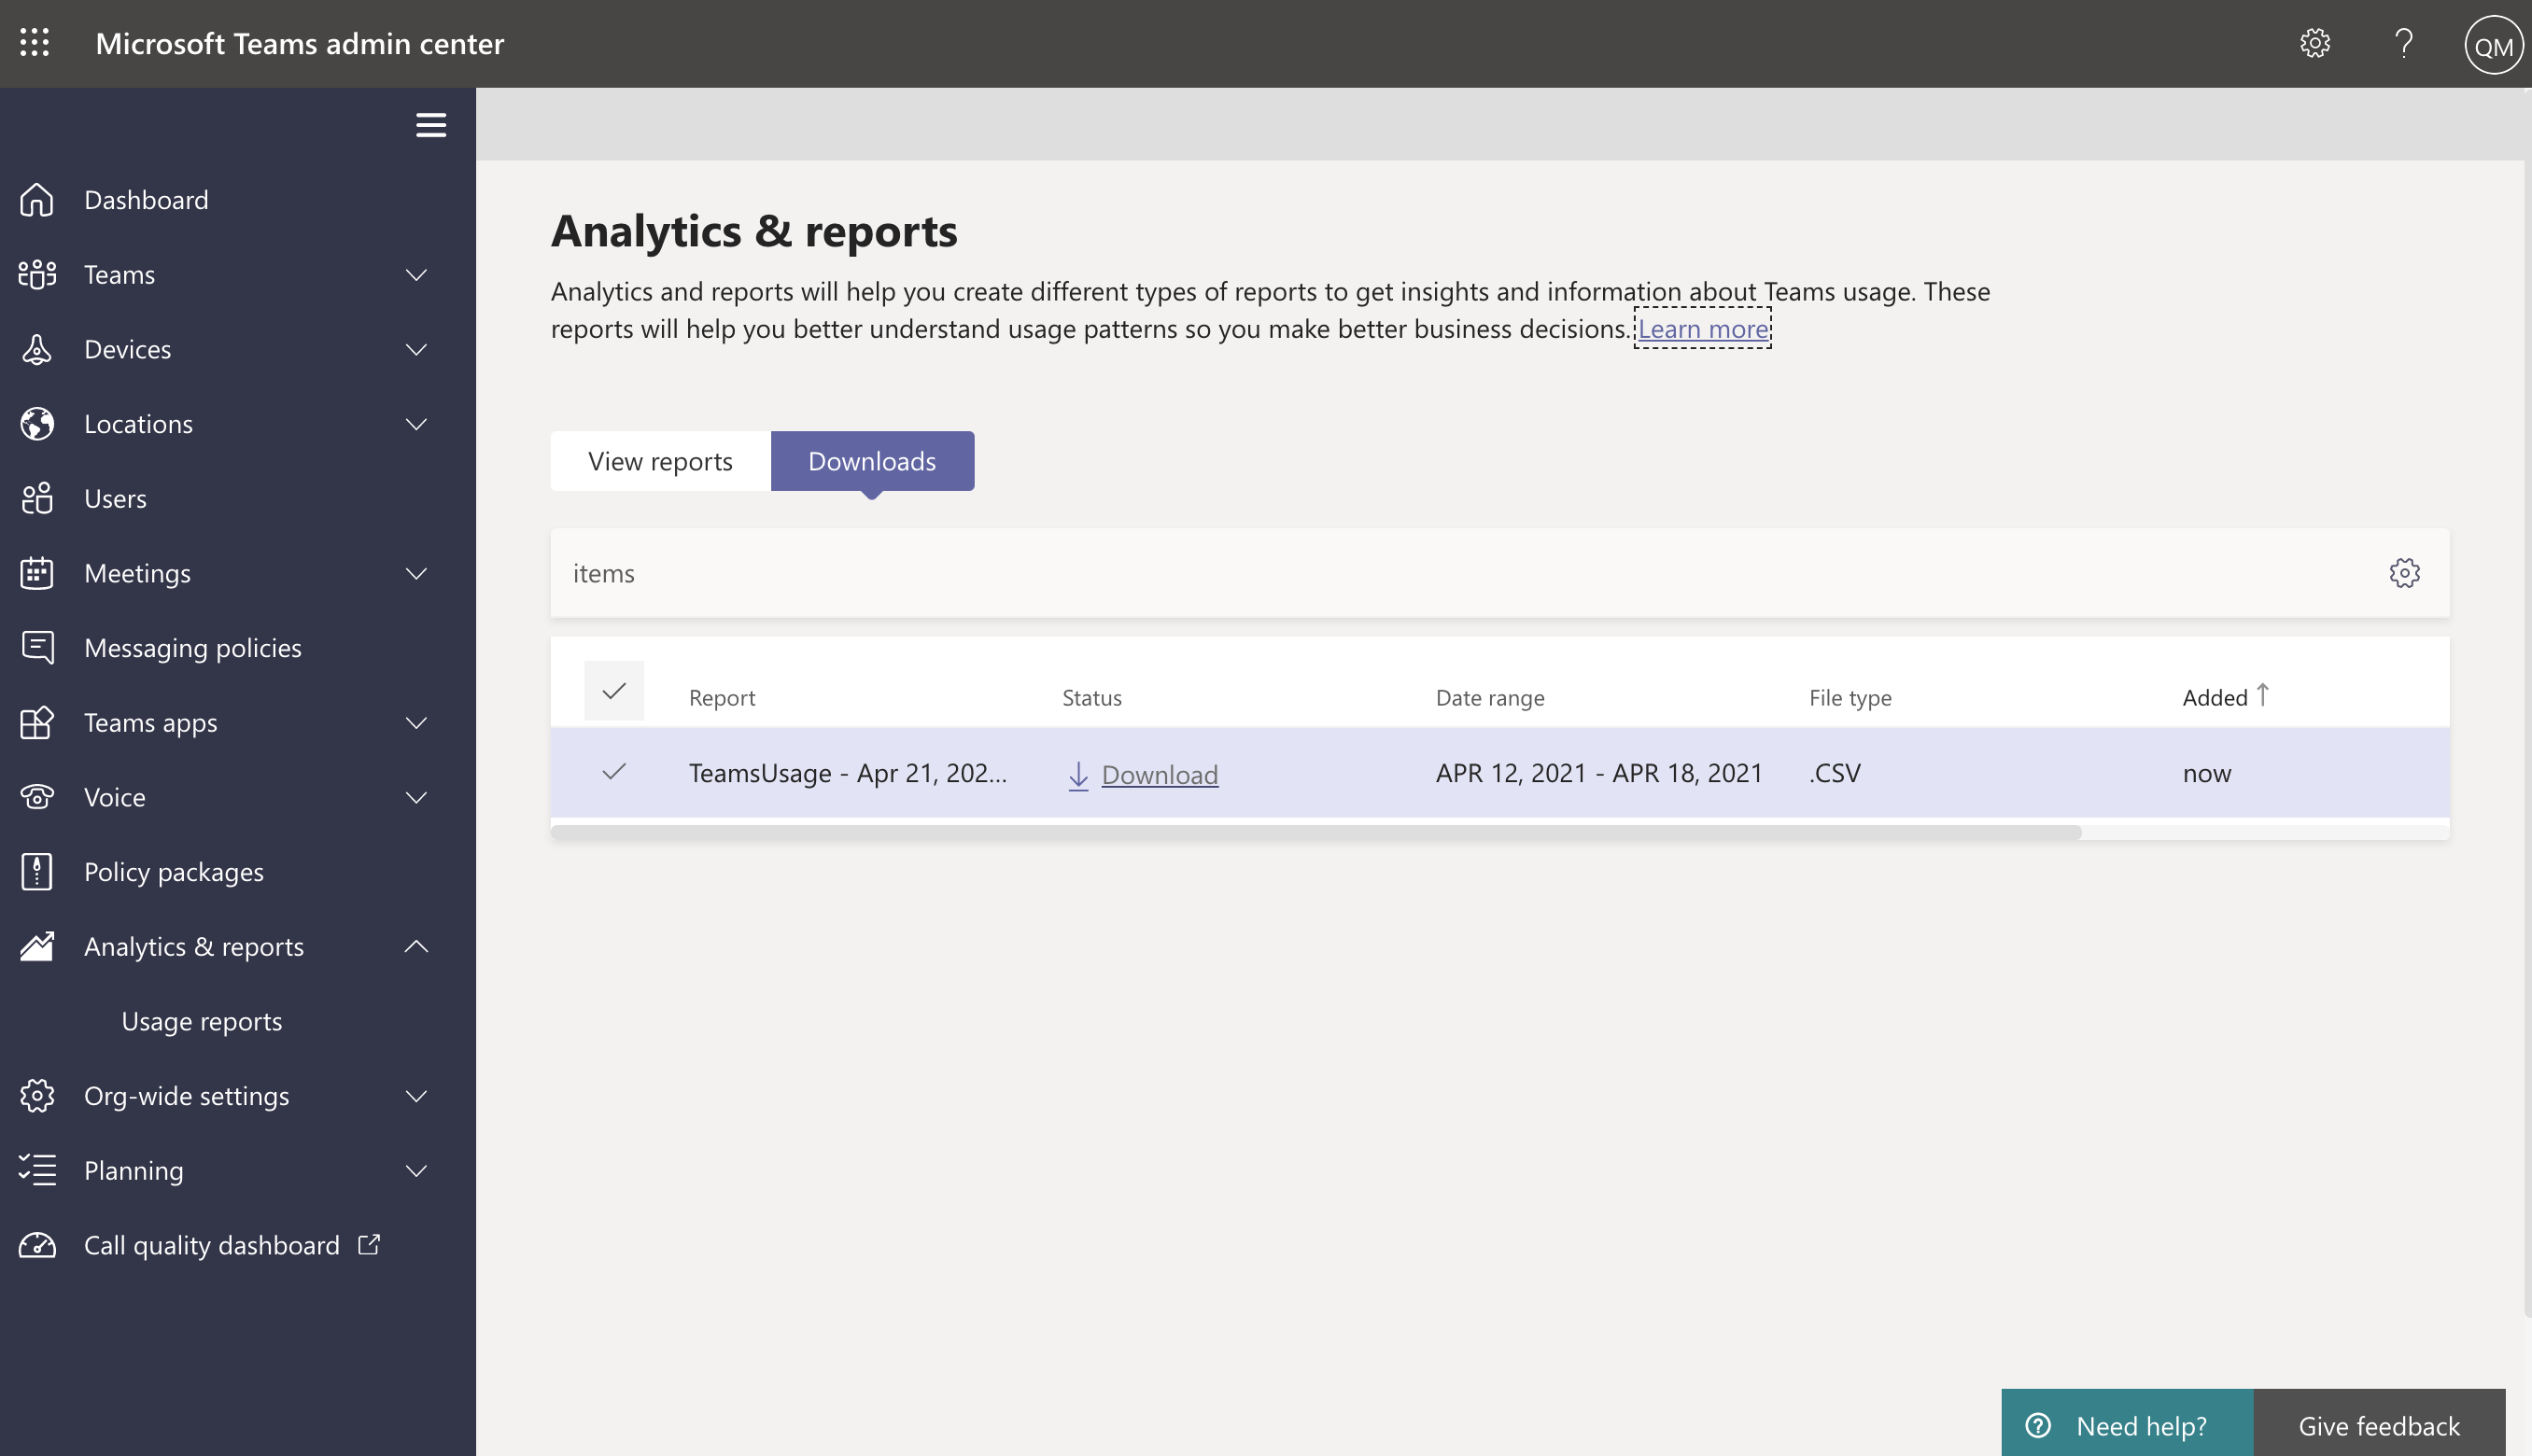 Screenshot of Downloads tab in the Analytics & reports section of the Teams admin center.